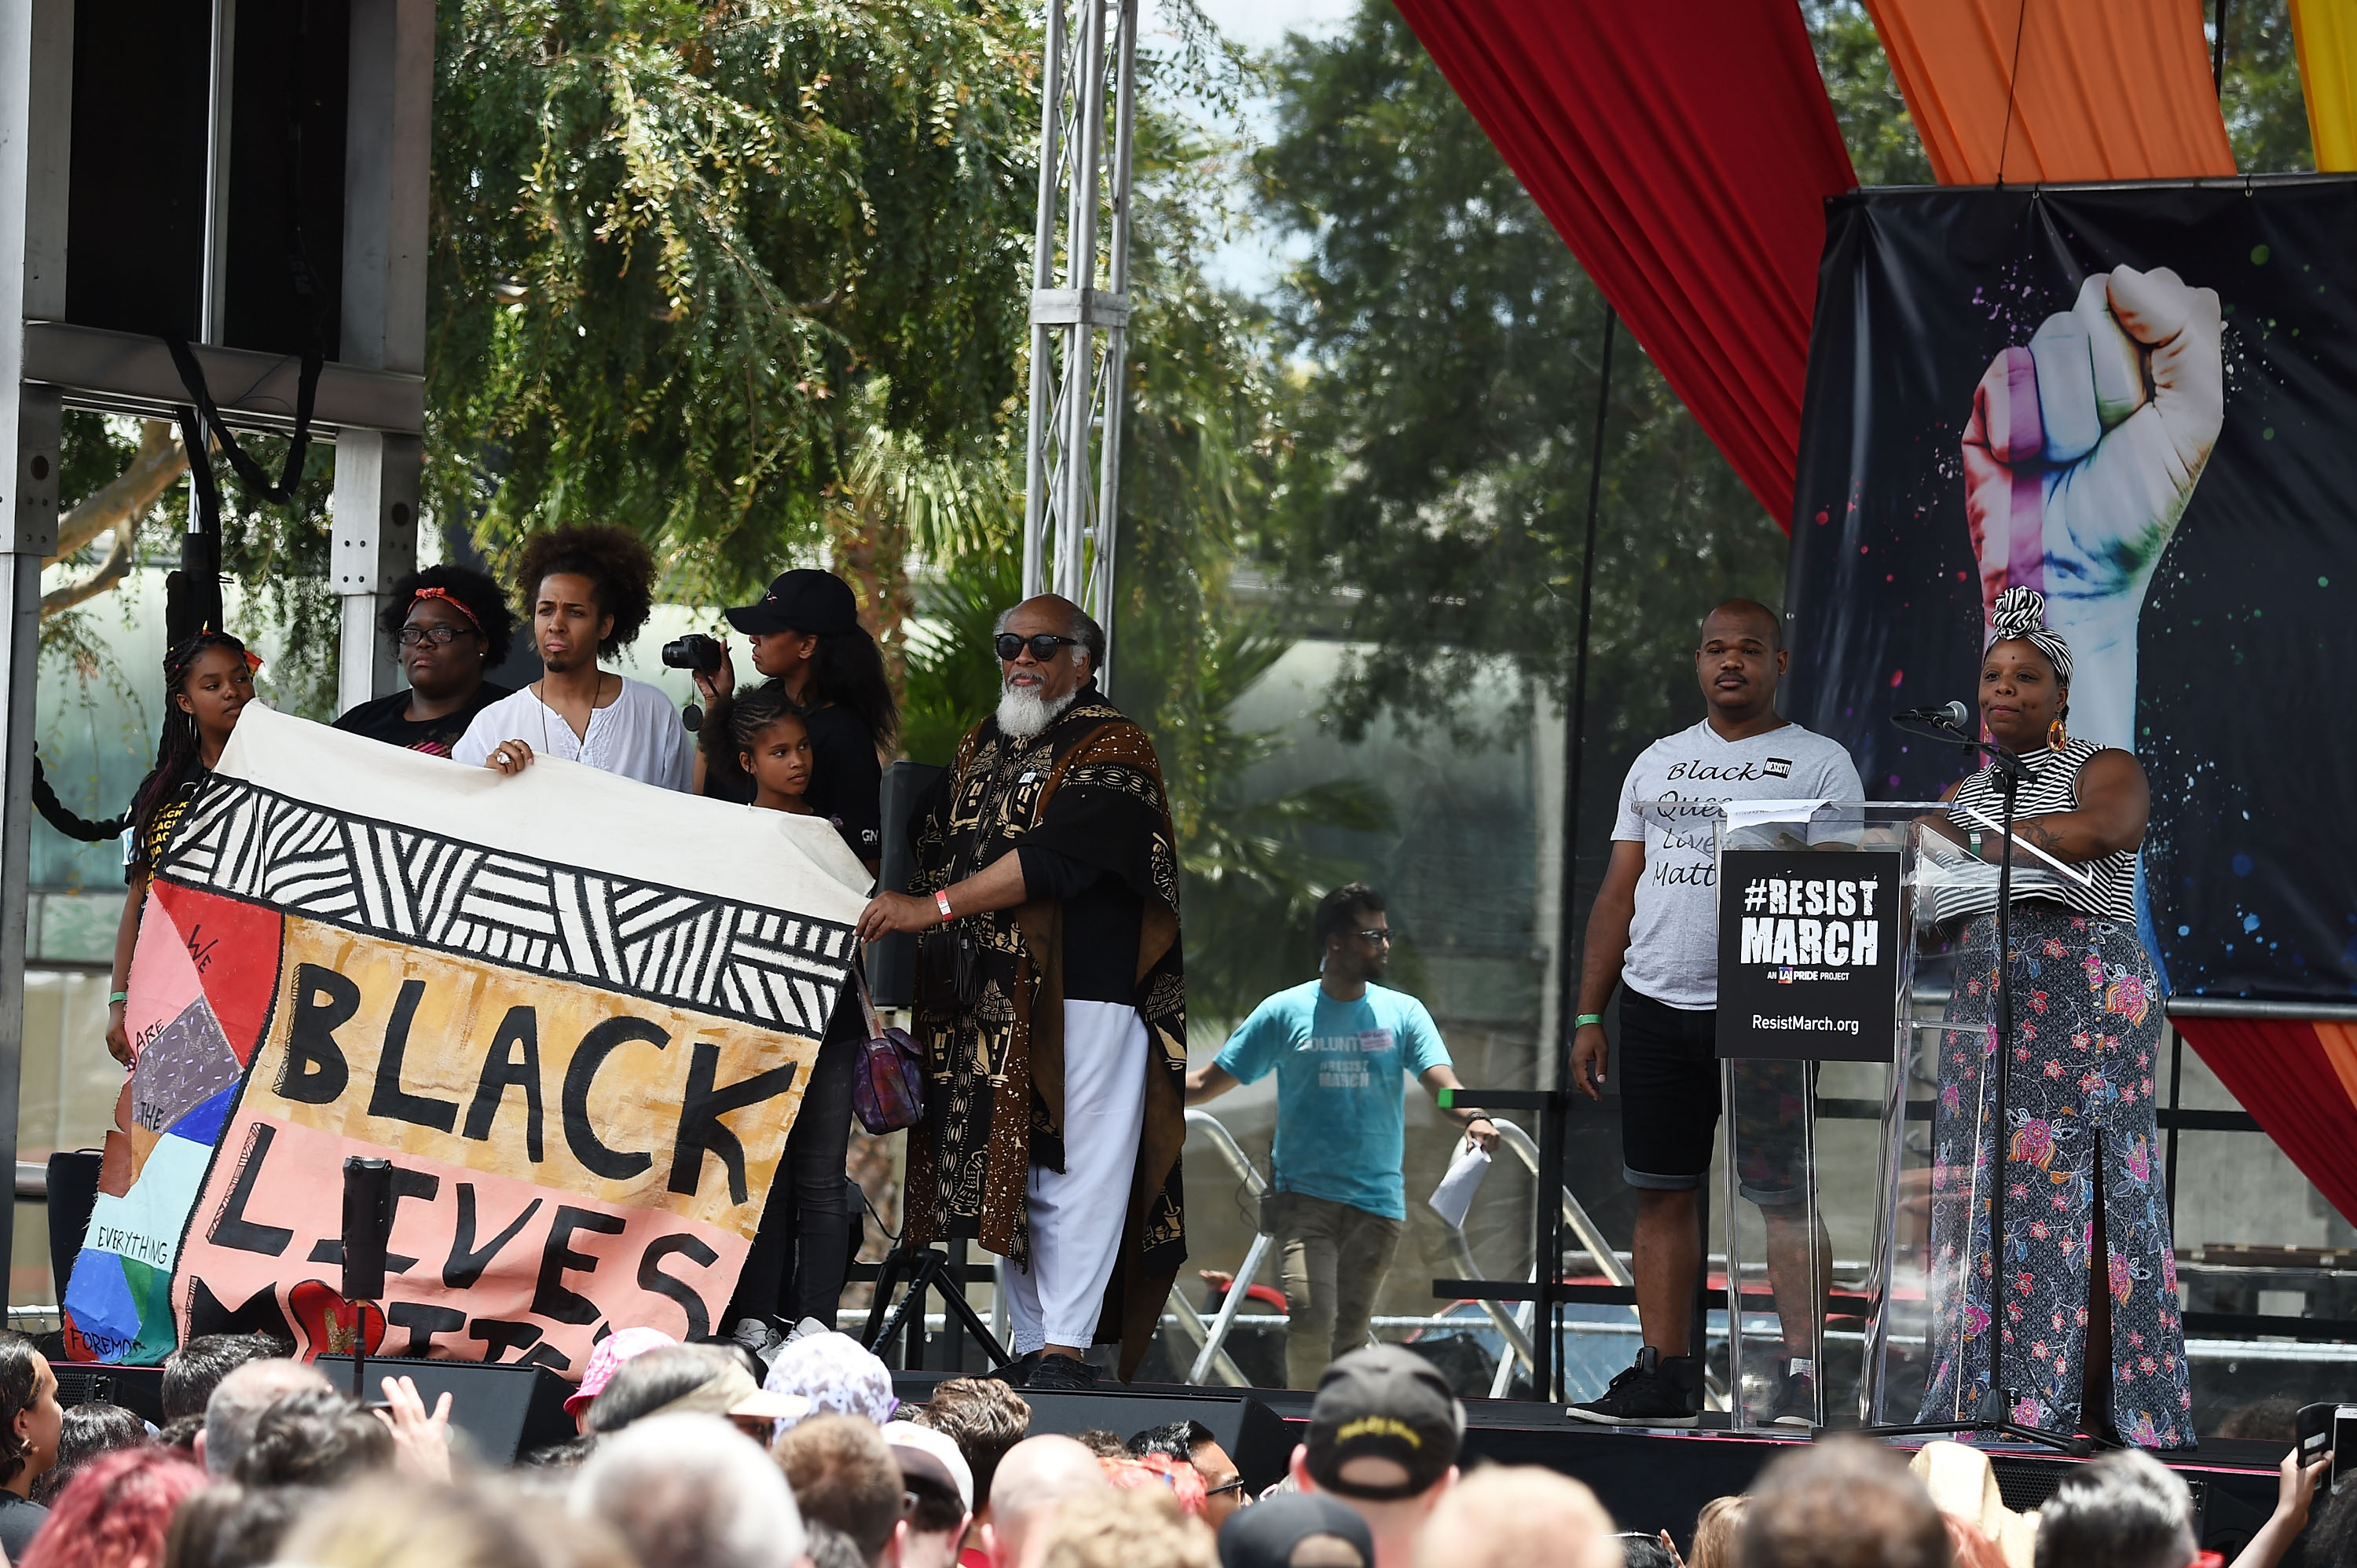 Activists Christopher Jackson (L) and Patrisse Cullors (R) attend the LA Pride #ResistMarch on June 11, 2017 in West Hollywood, California.